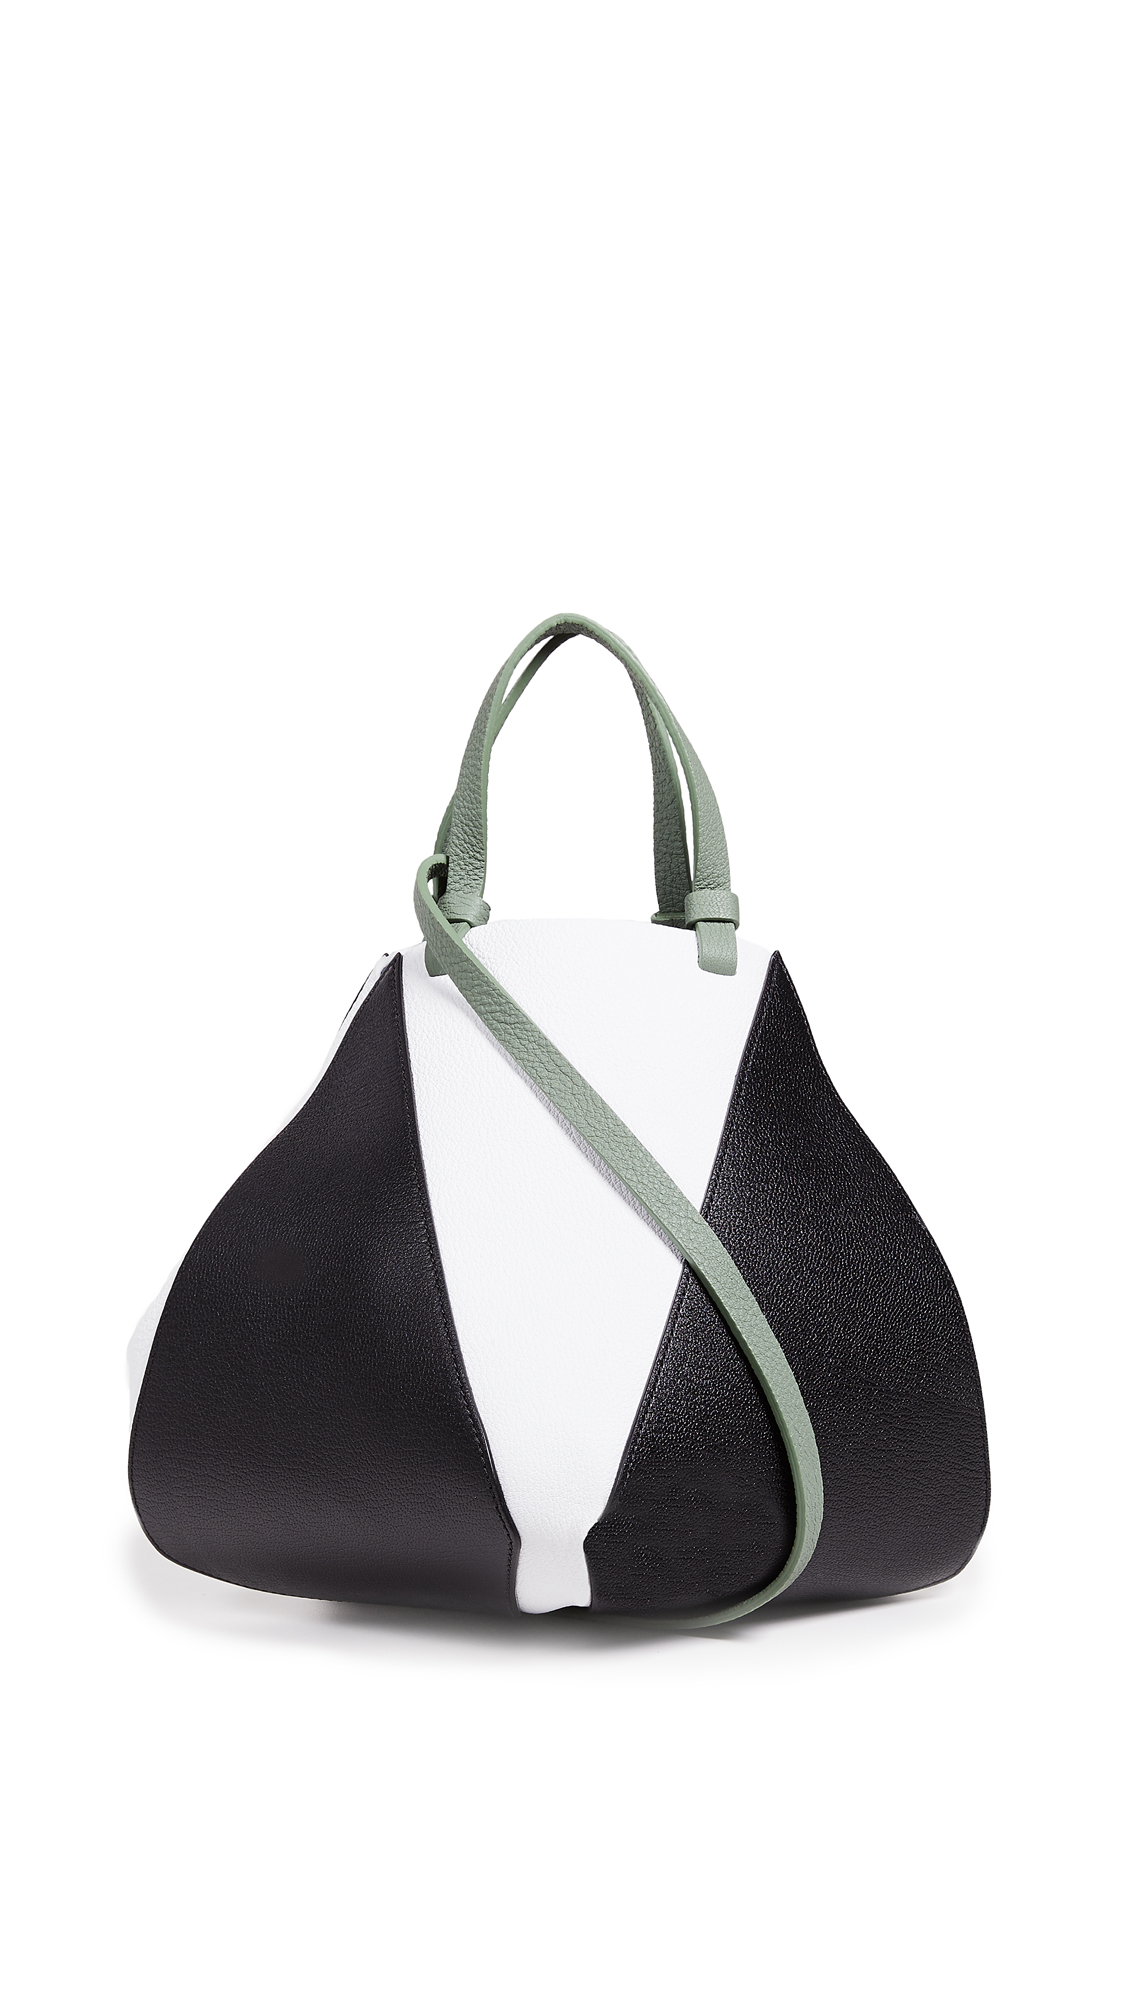 THE VOLON Cindy Shopper Tote In Black/White